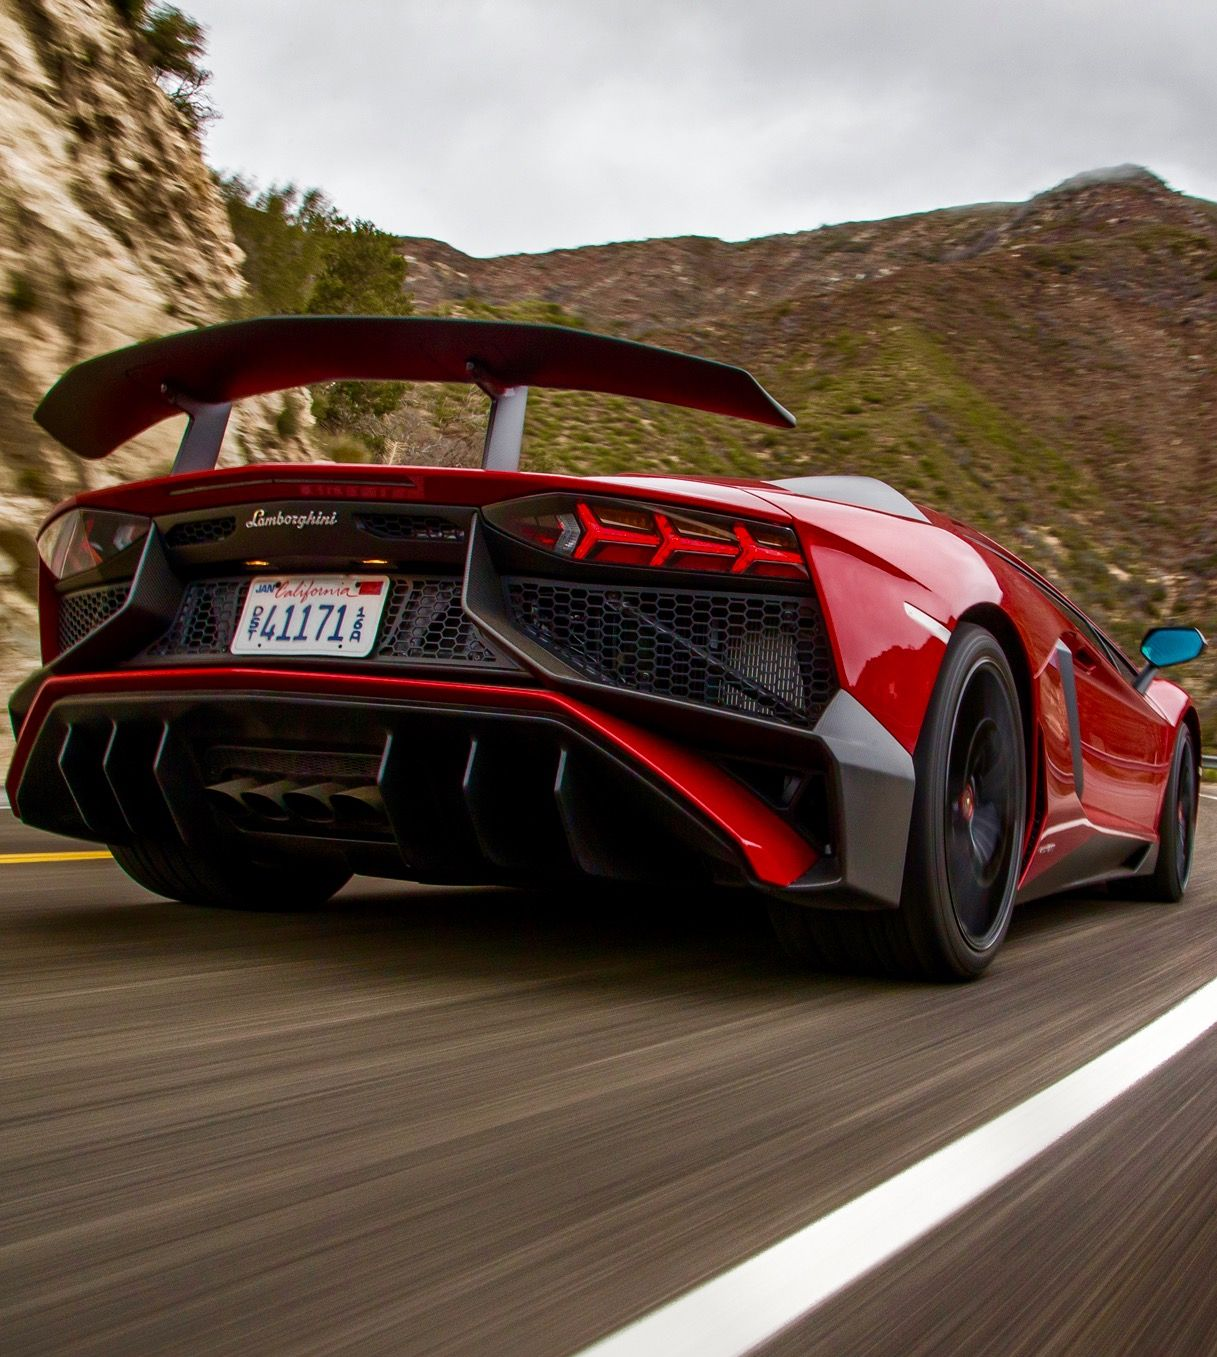 Lamborghini Aventador SV #RePin by AT Social Media Marketing - Pinterest Marketing Specialists ATSocialMedia.co.uk